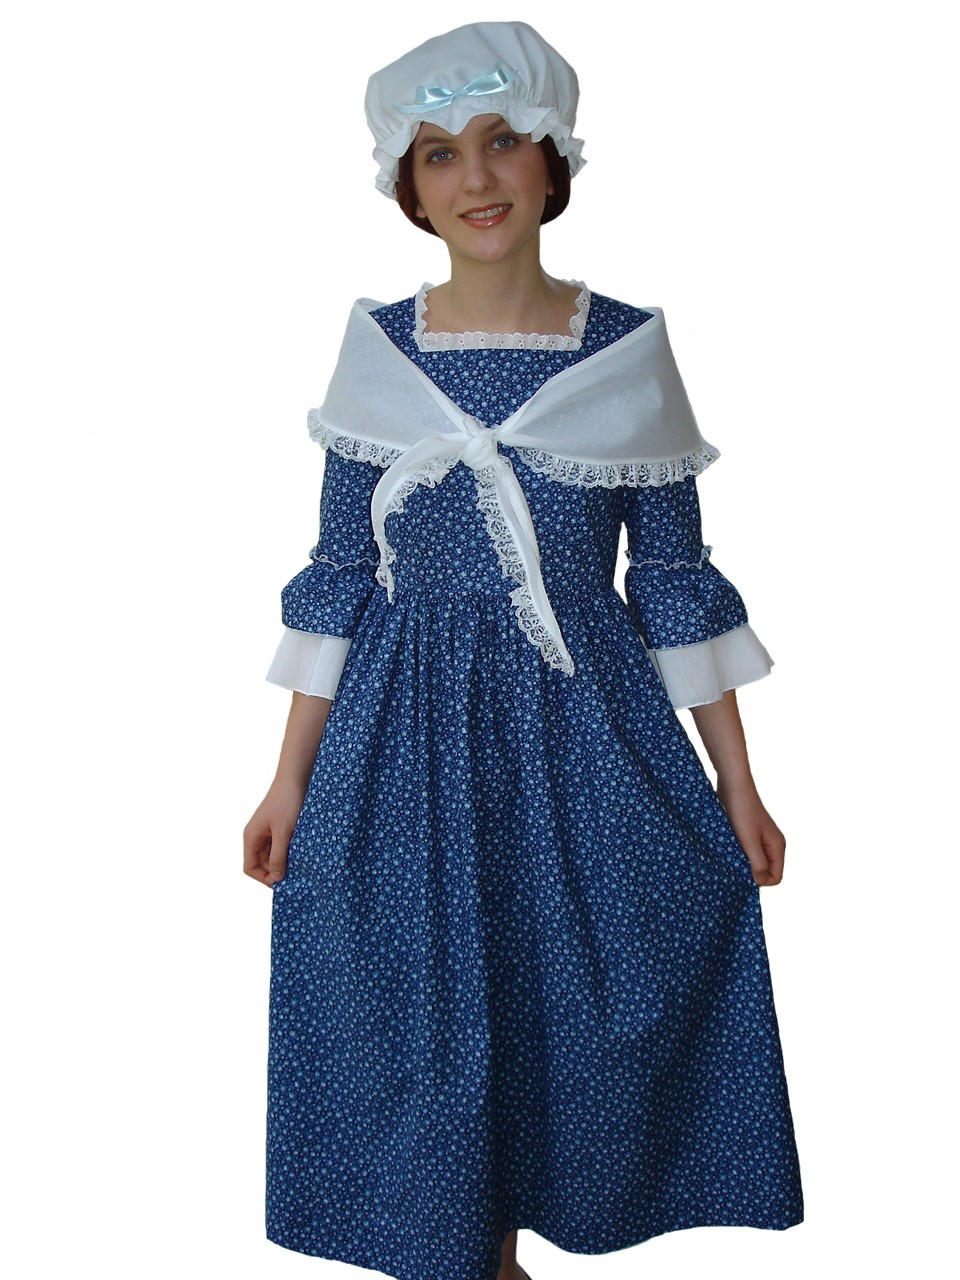 Custom Boutique Historical Colonial Work Day Adult Size Costume